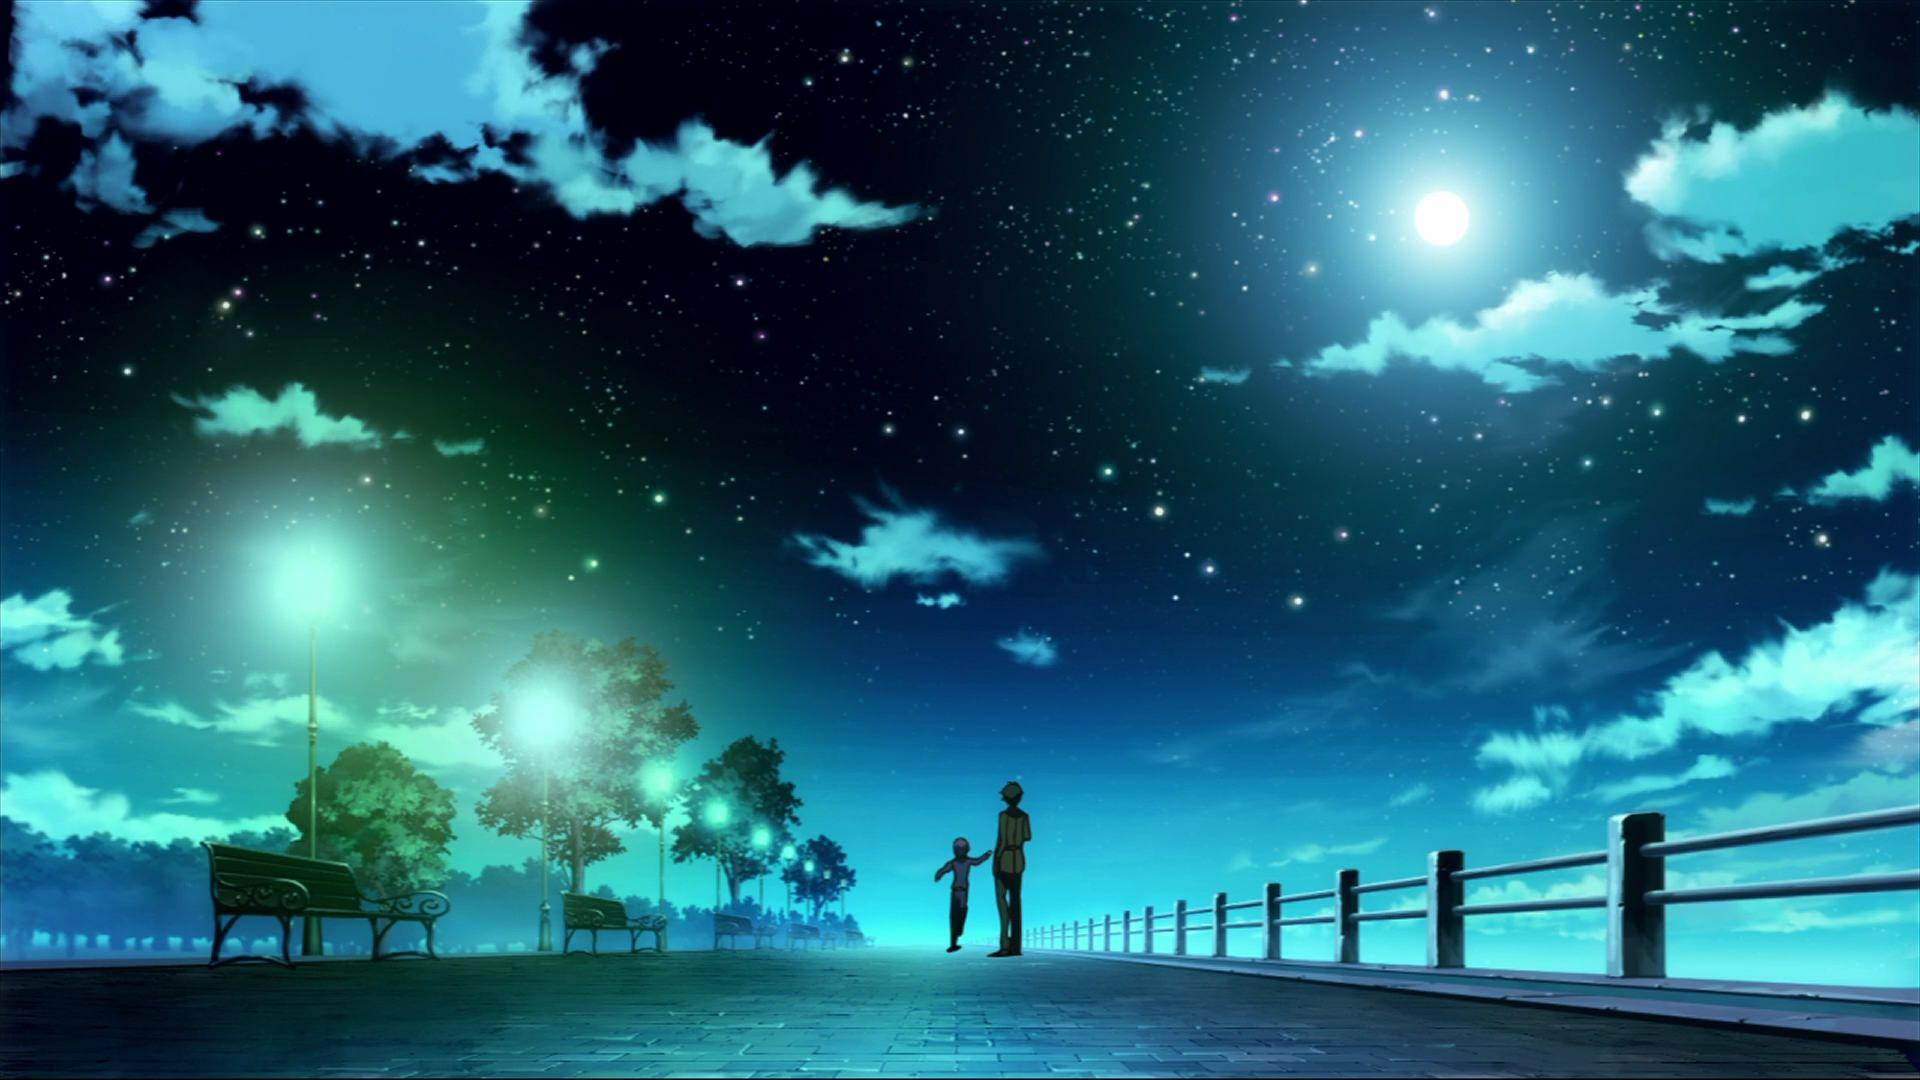 Anime Night Sky Wallpaper Background stuff